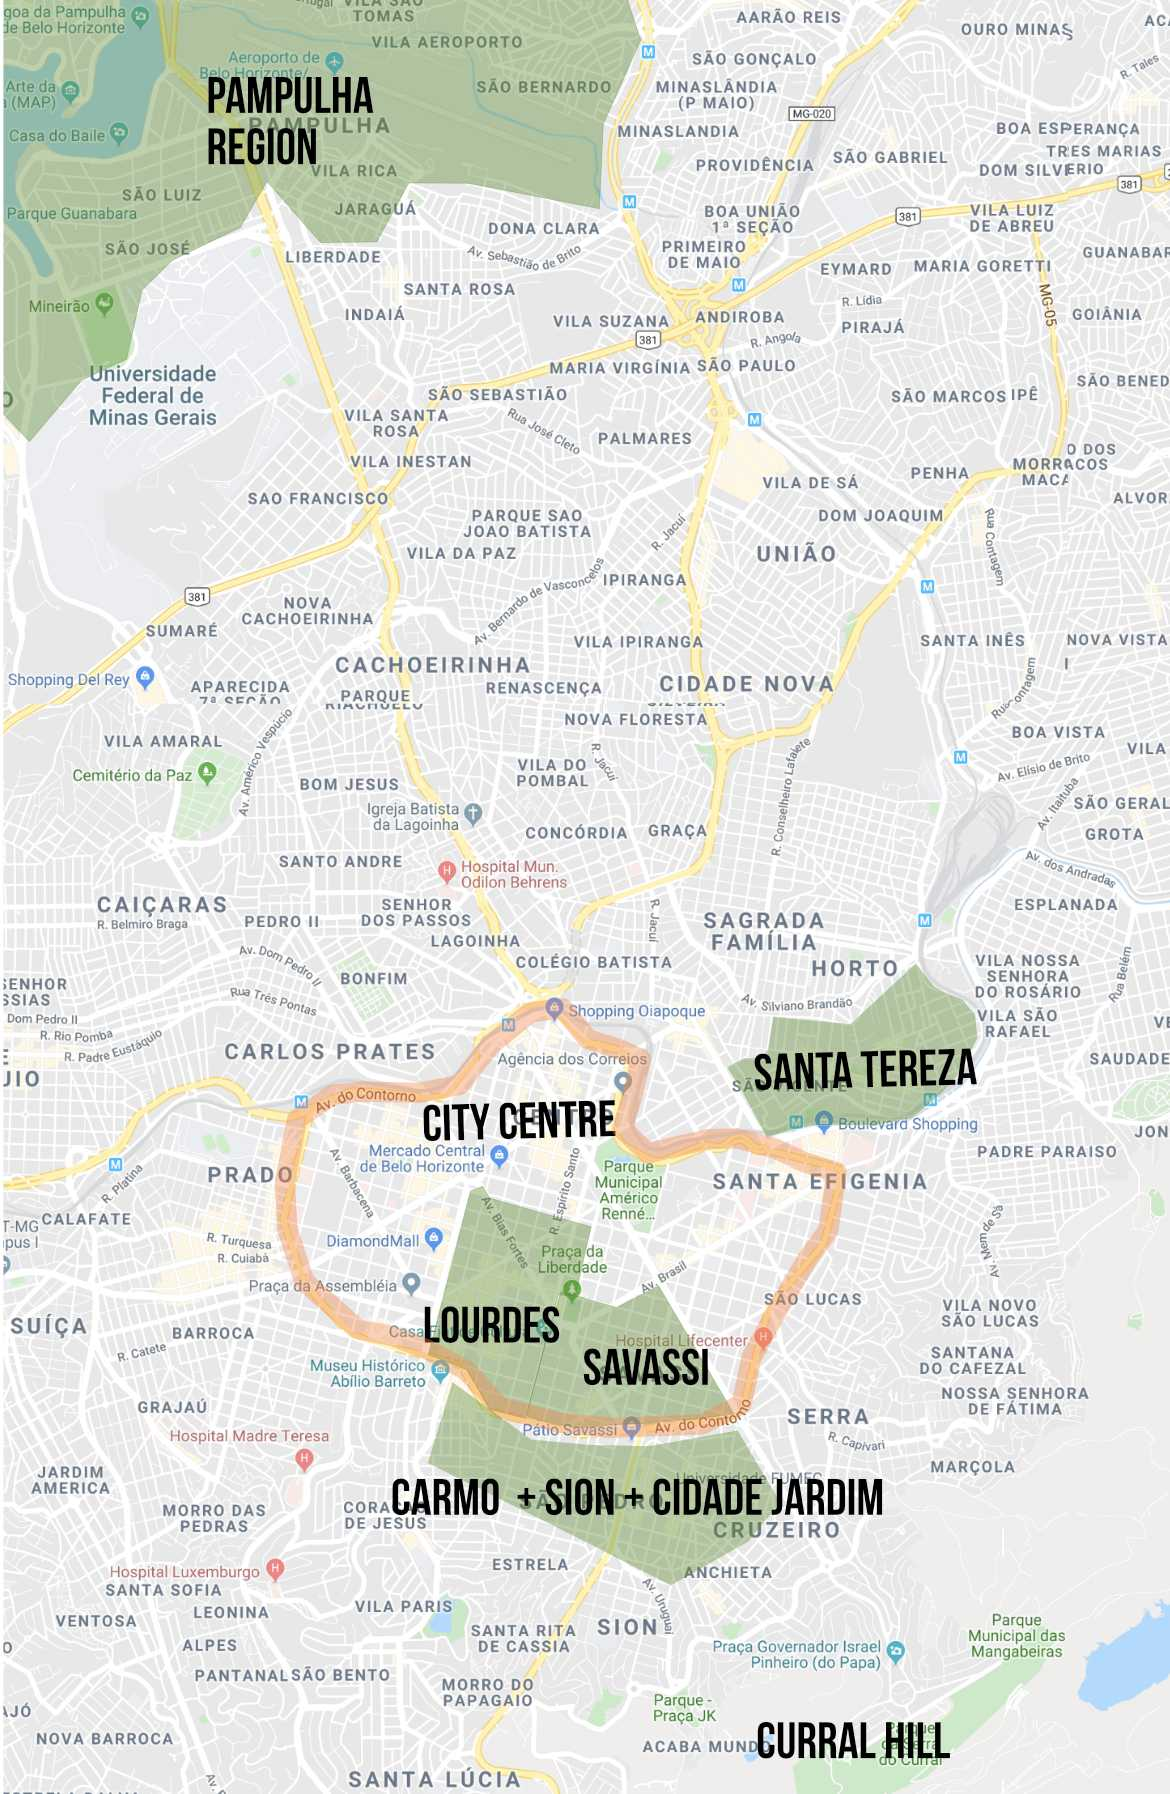 Map featuring the best neighbourhoods to stay in Belo Horizonte